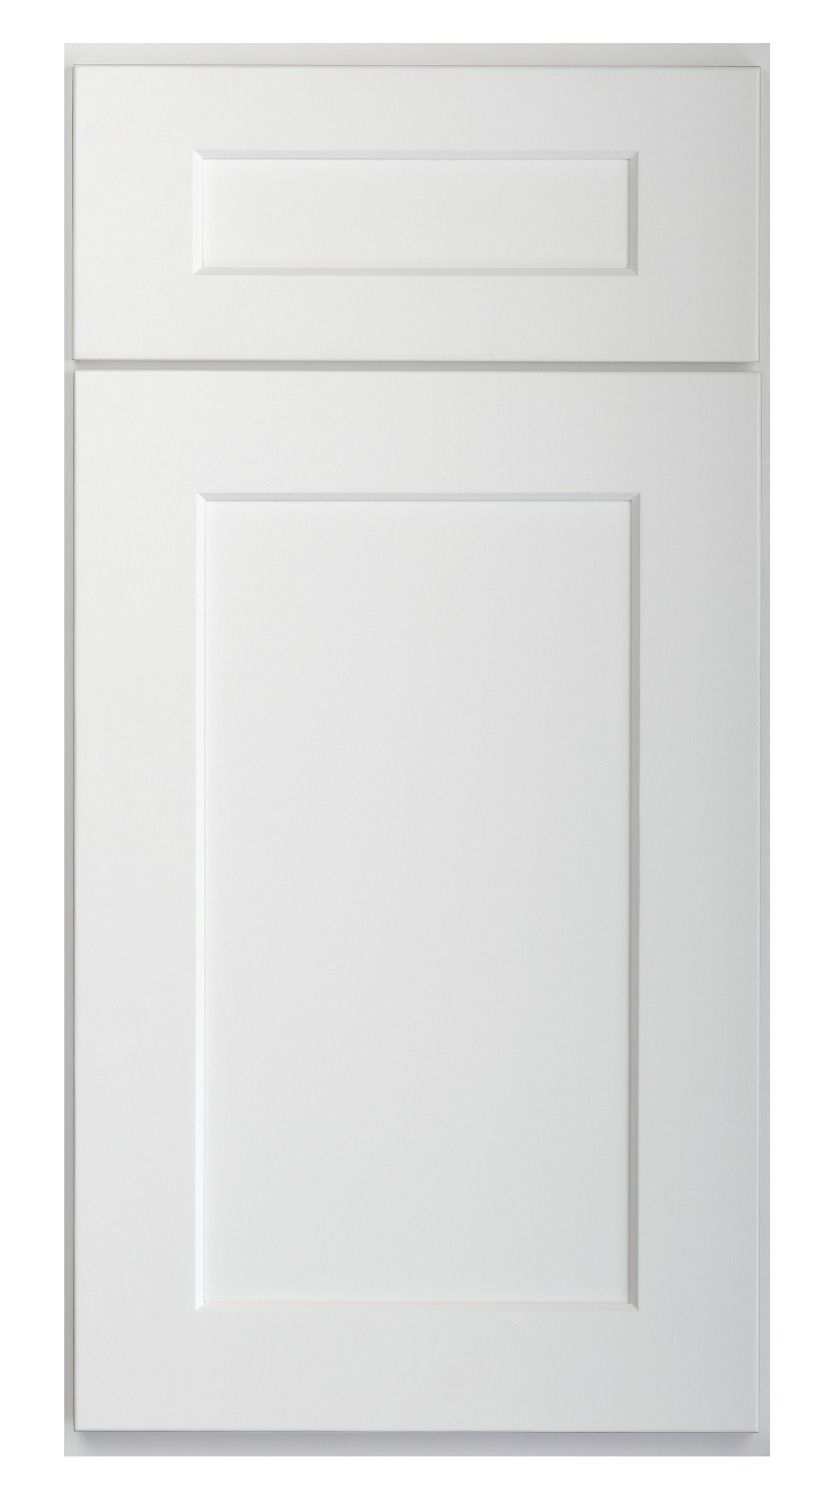 White Shaker Cabinet Door Fronts